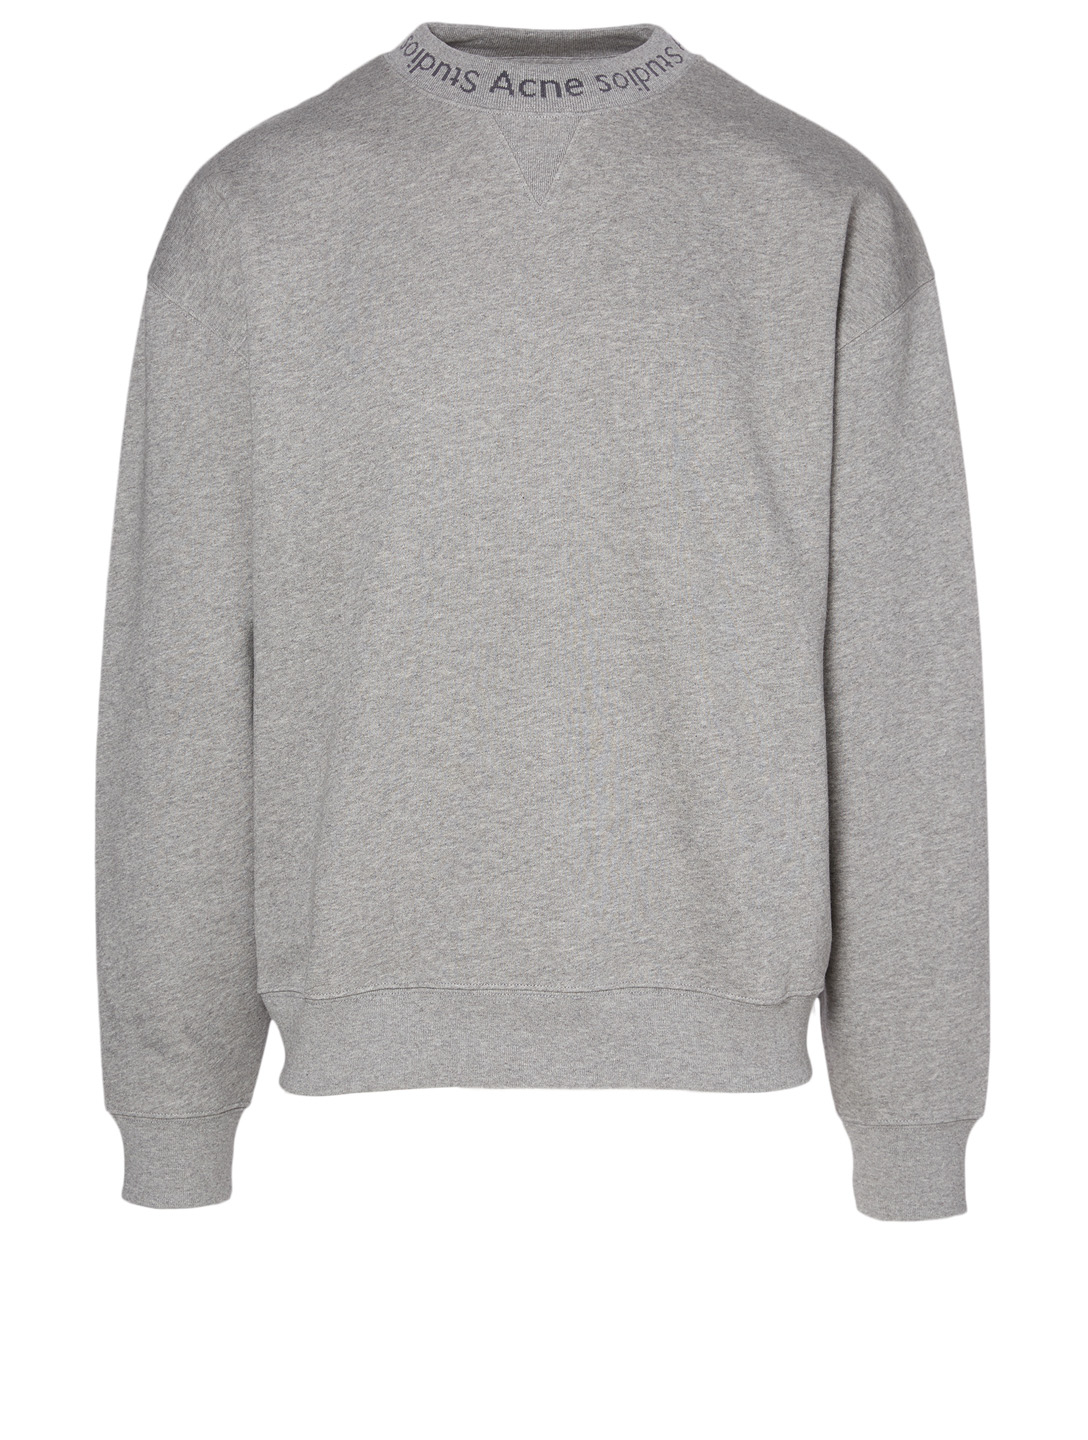 ACNE STUDIOS Flogho Sweatshirt Men's Grey